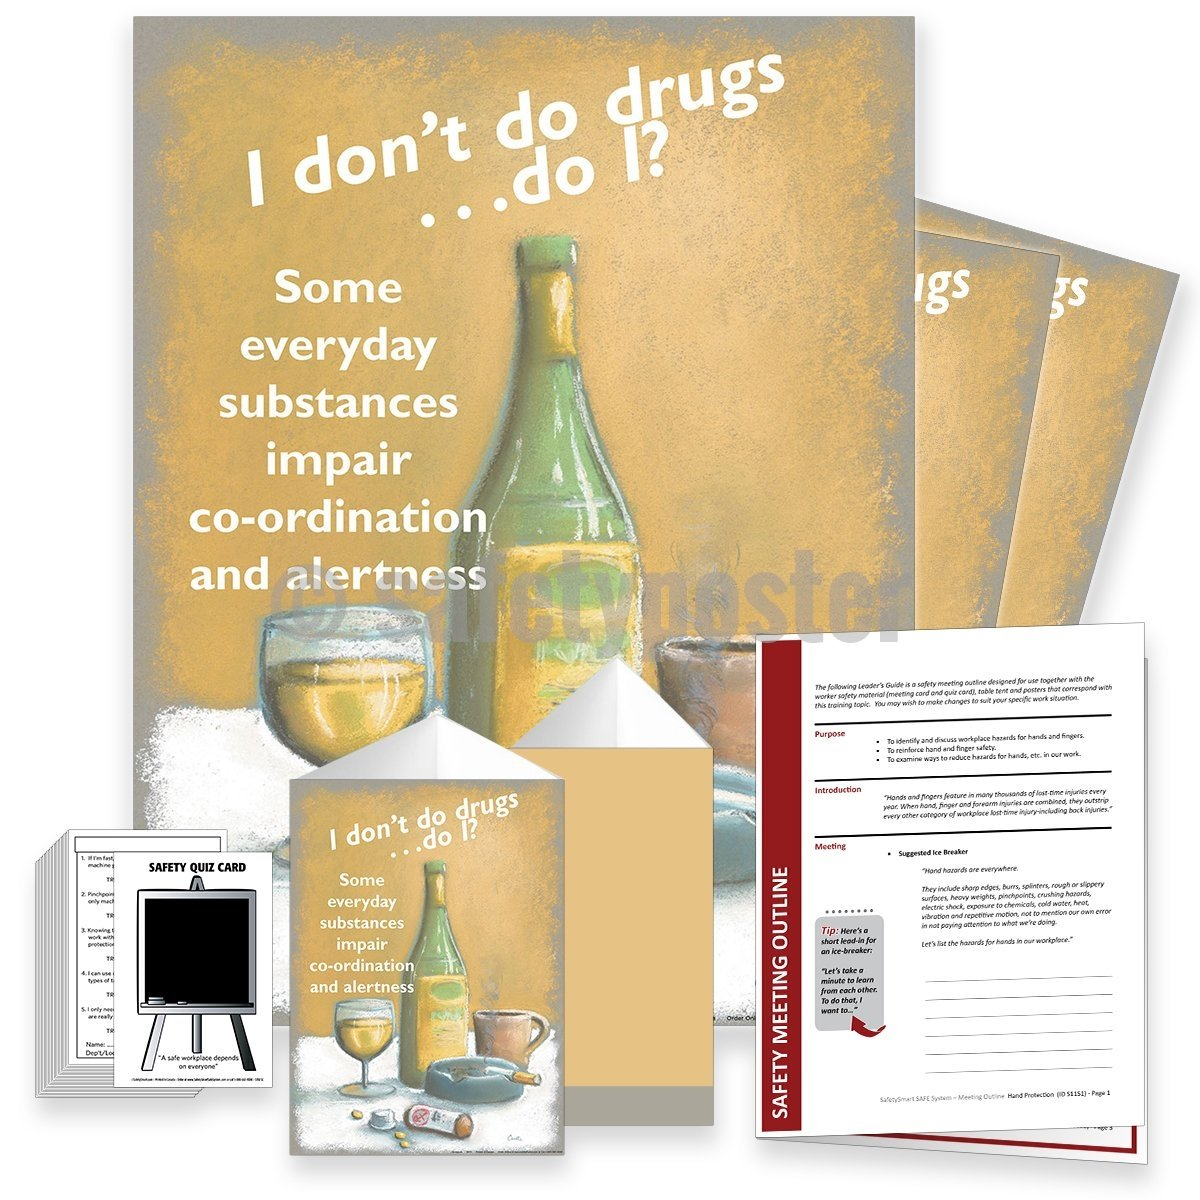 Safety Meeting Kit - Workplace Drug And Alcohol Abuse Kits